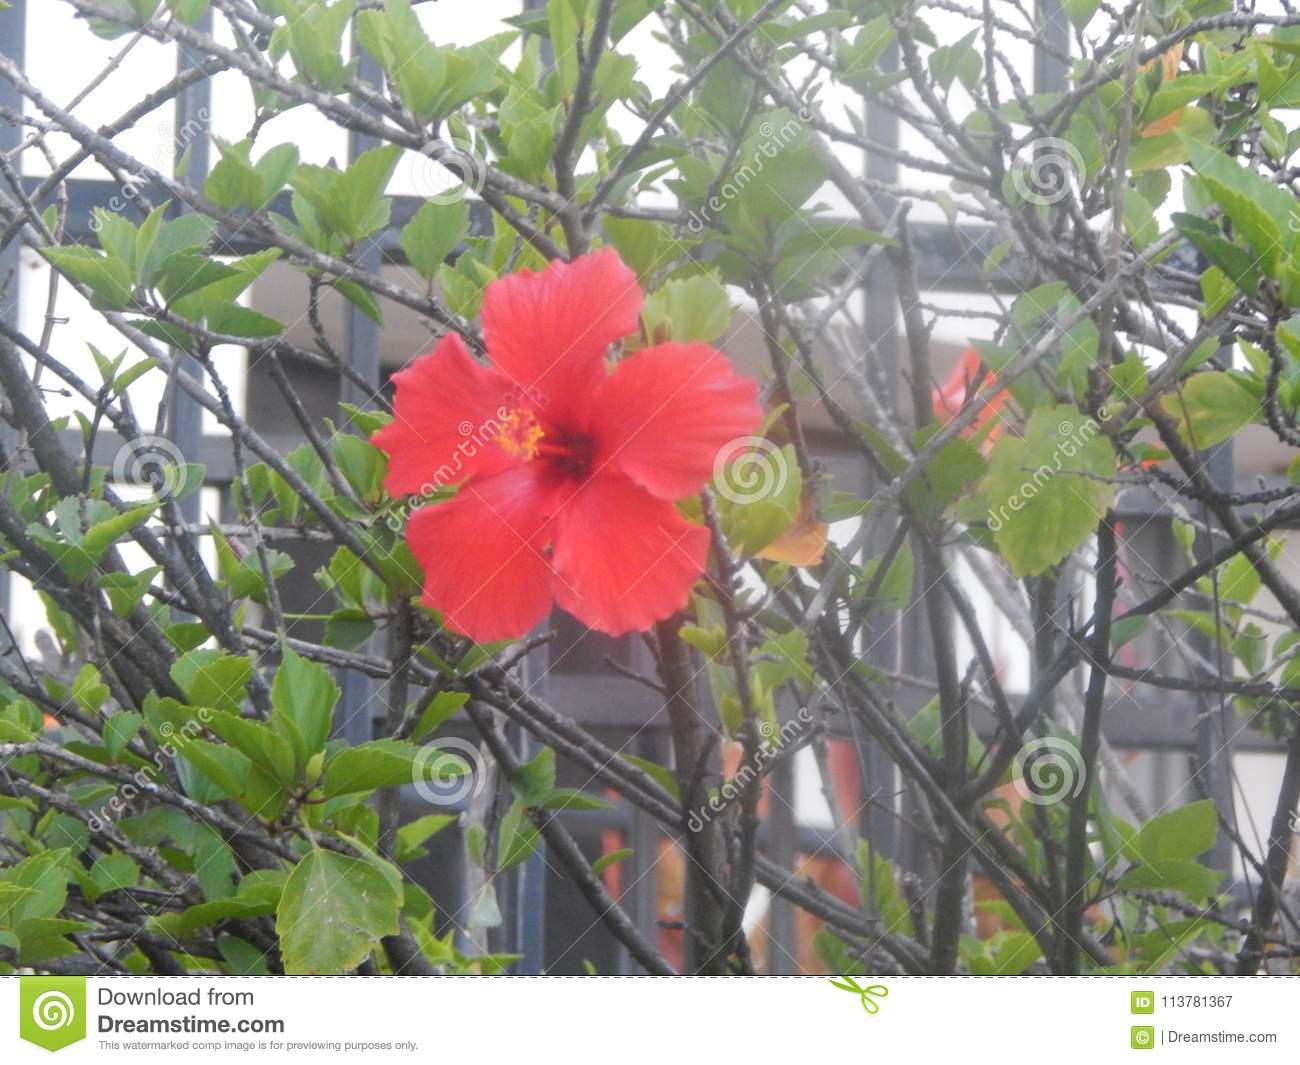 The hibiscus flower san diego ca stock image image of flowers download the hibiscus flower san diego ca stock image image of flowers drinks izmirmasajfo